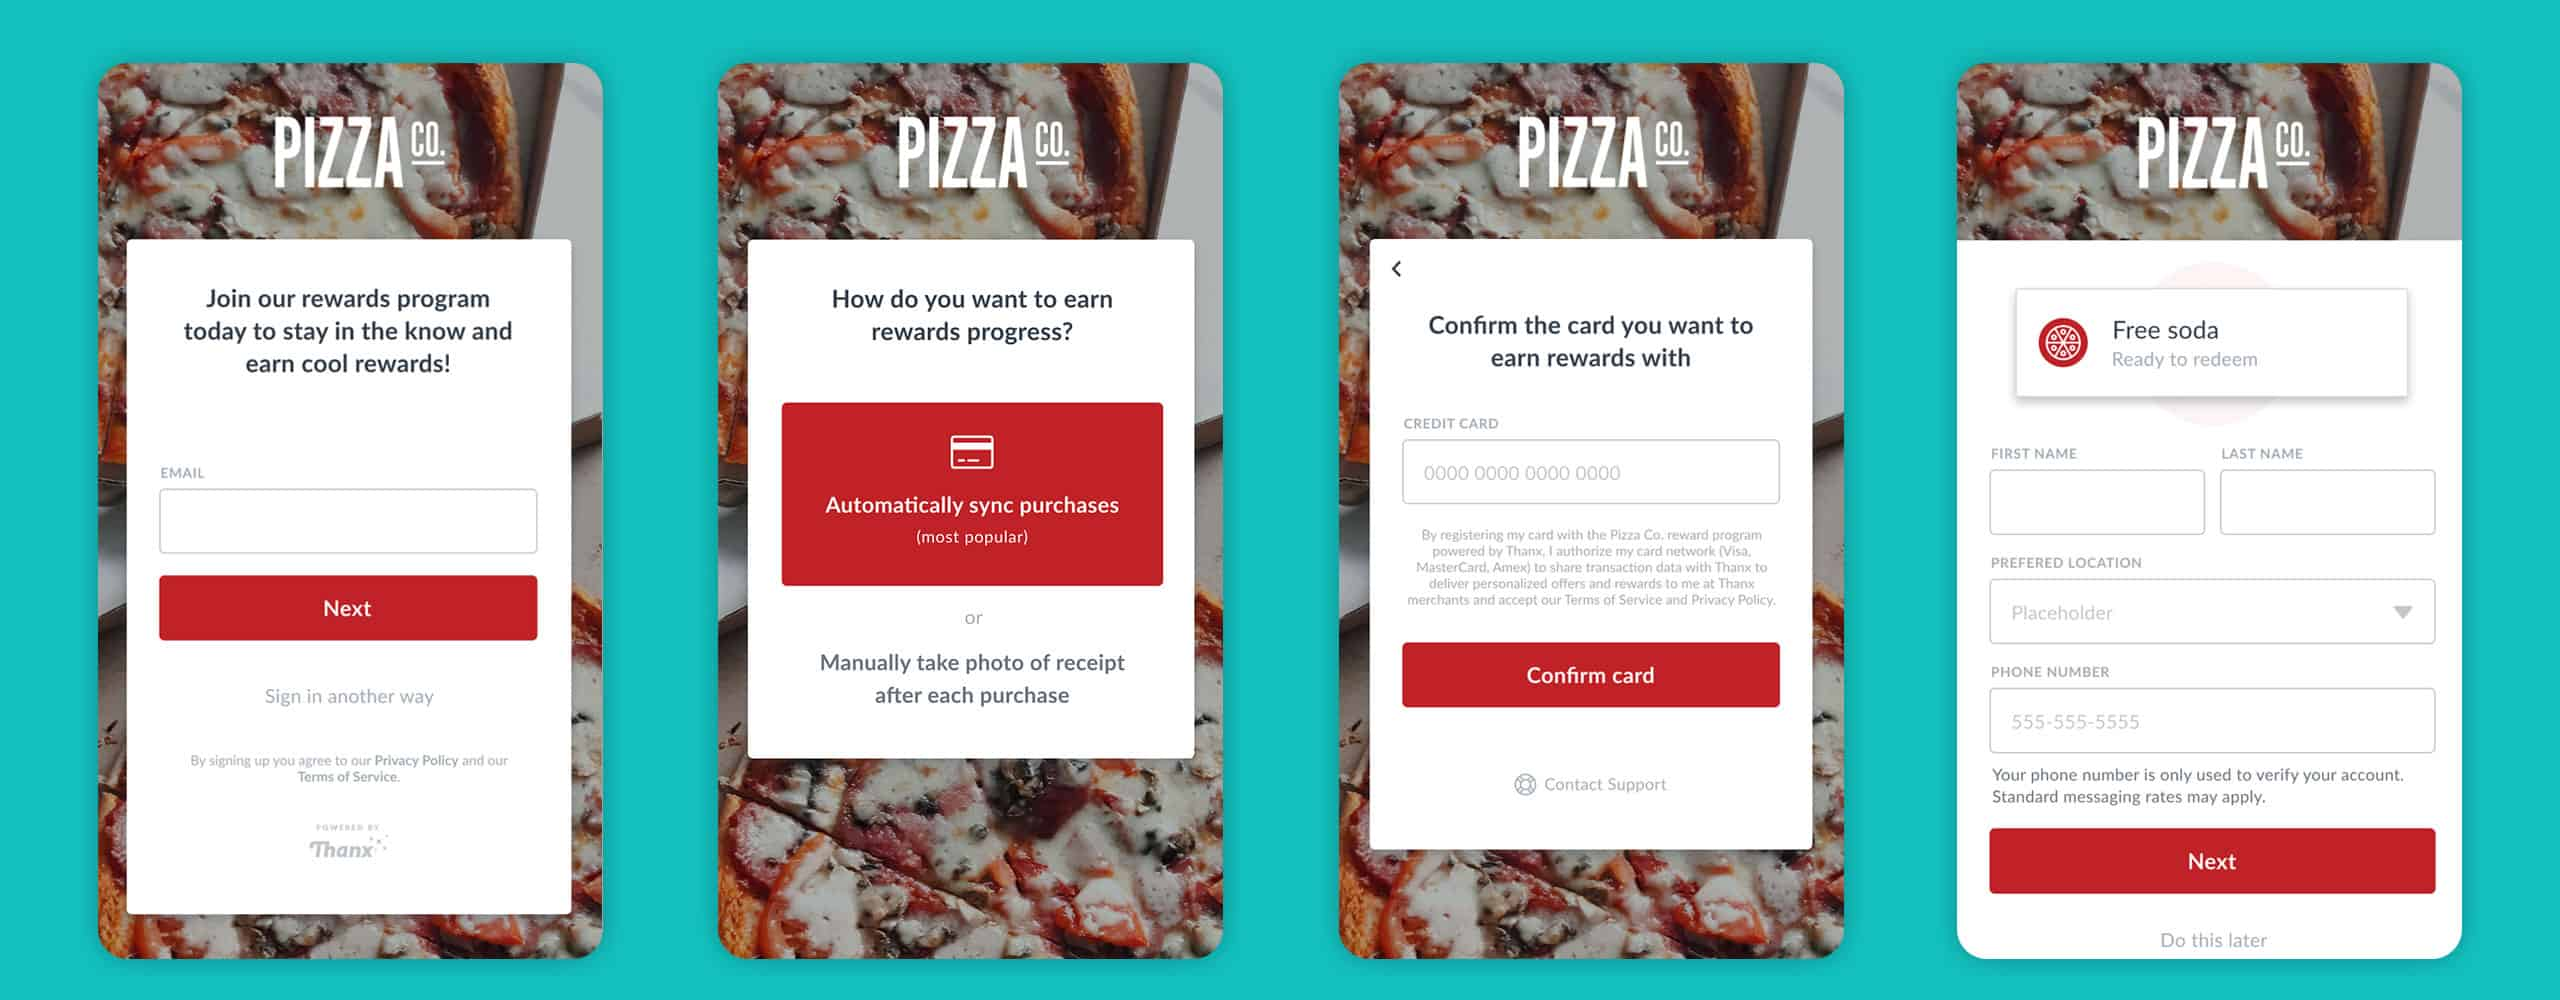 New sign-up flow screens